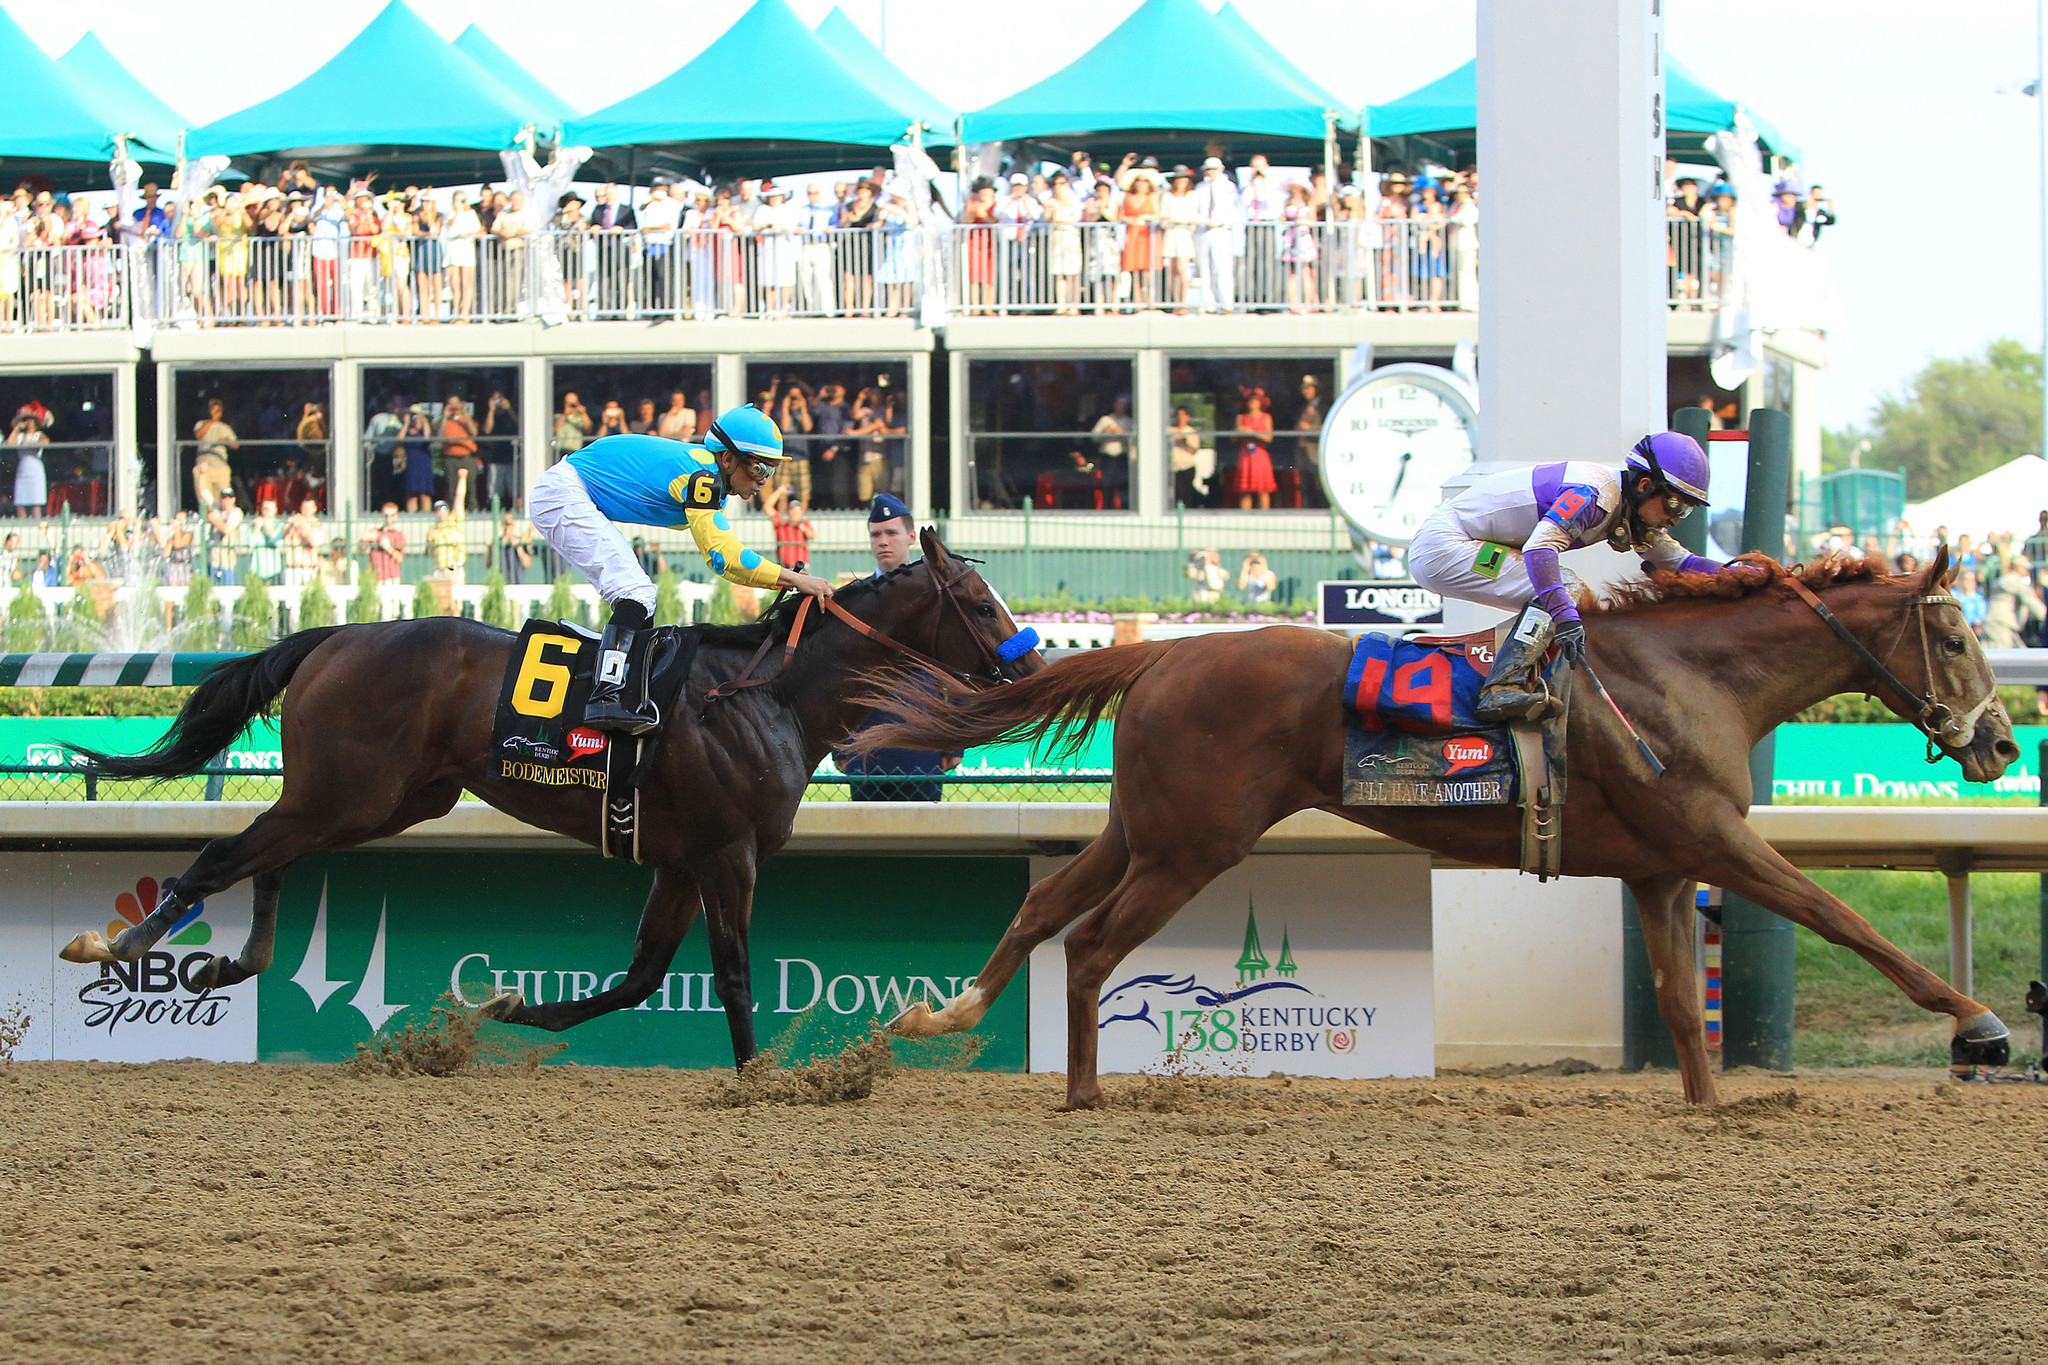 Mario Gutierrez celebrates atop I'll Have Another after winning the 138th running of the Kentucky Derby ahead of Bodemeister ridden by Mike Smith.